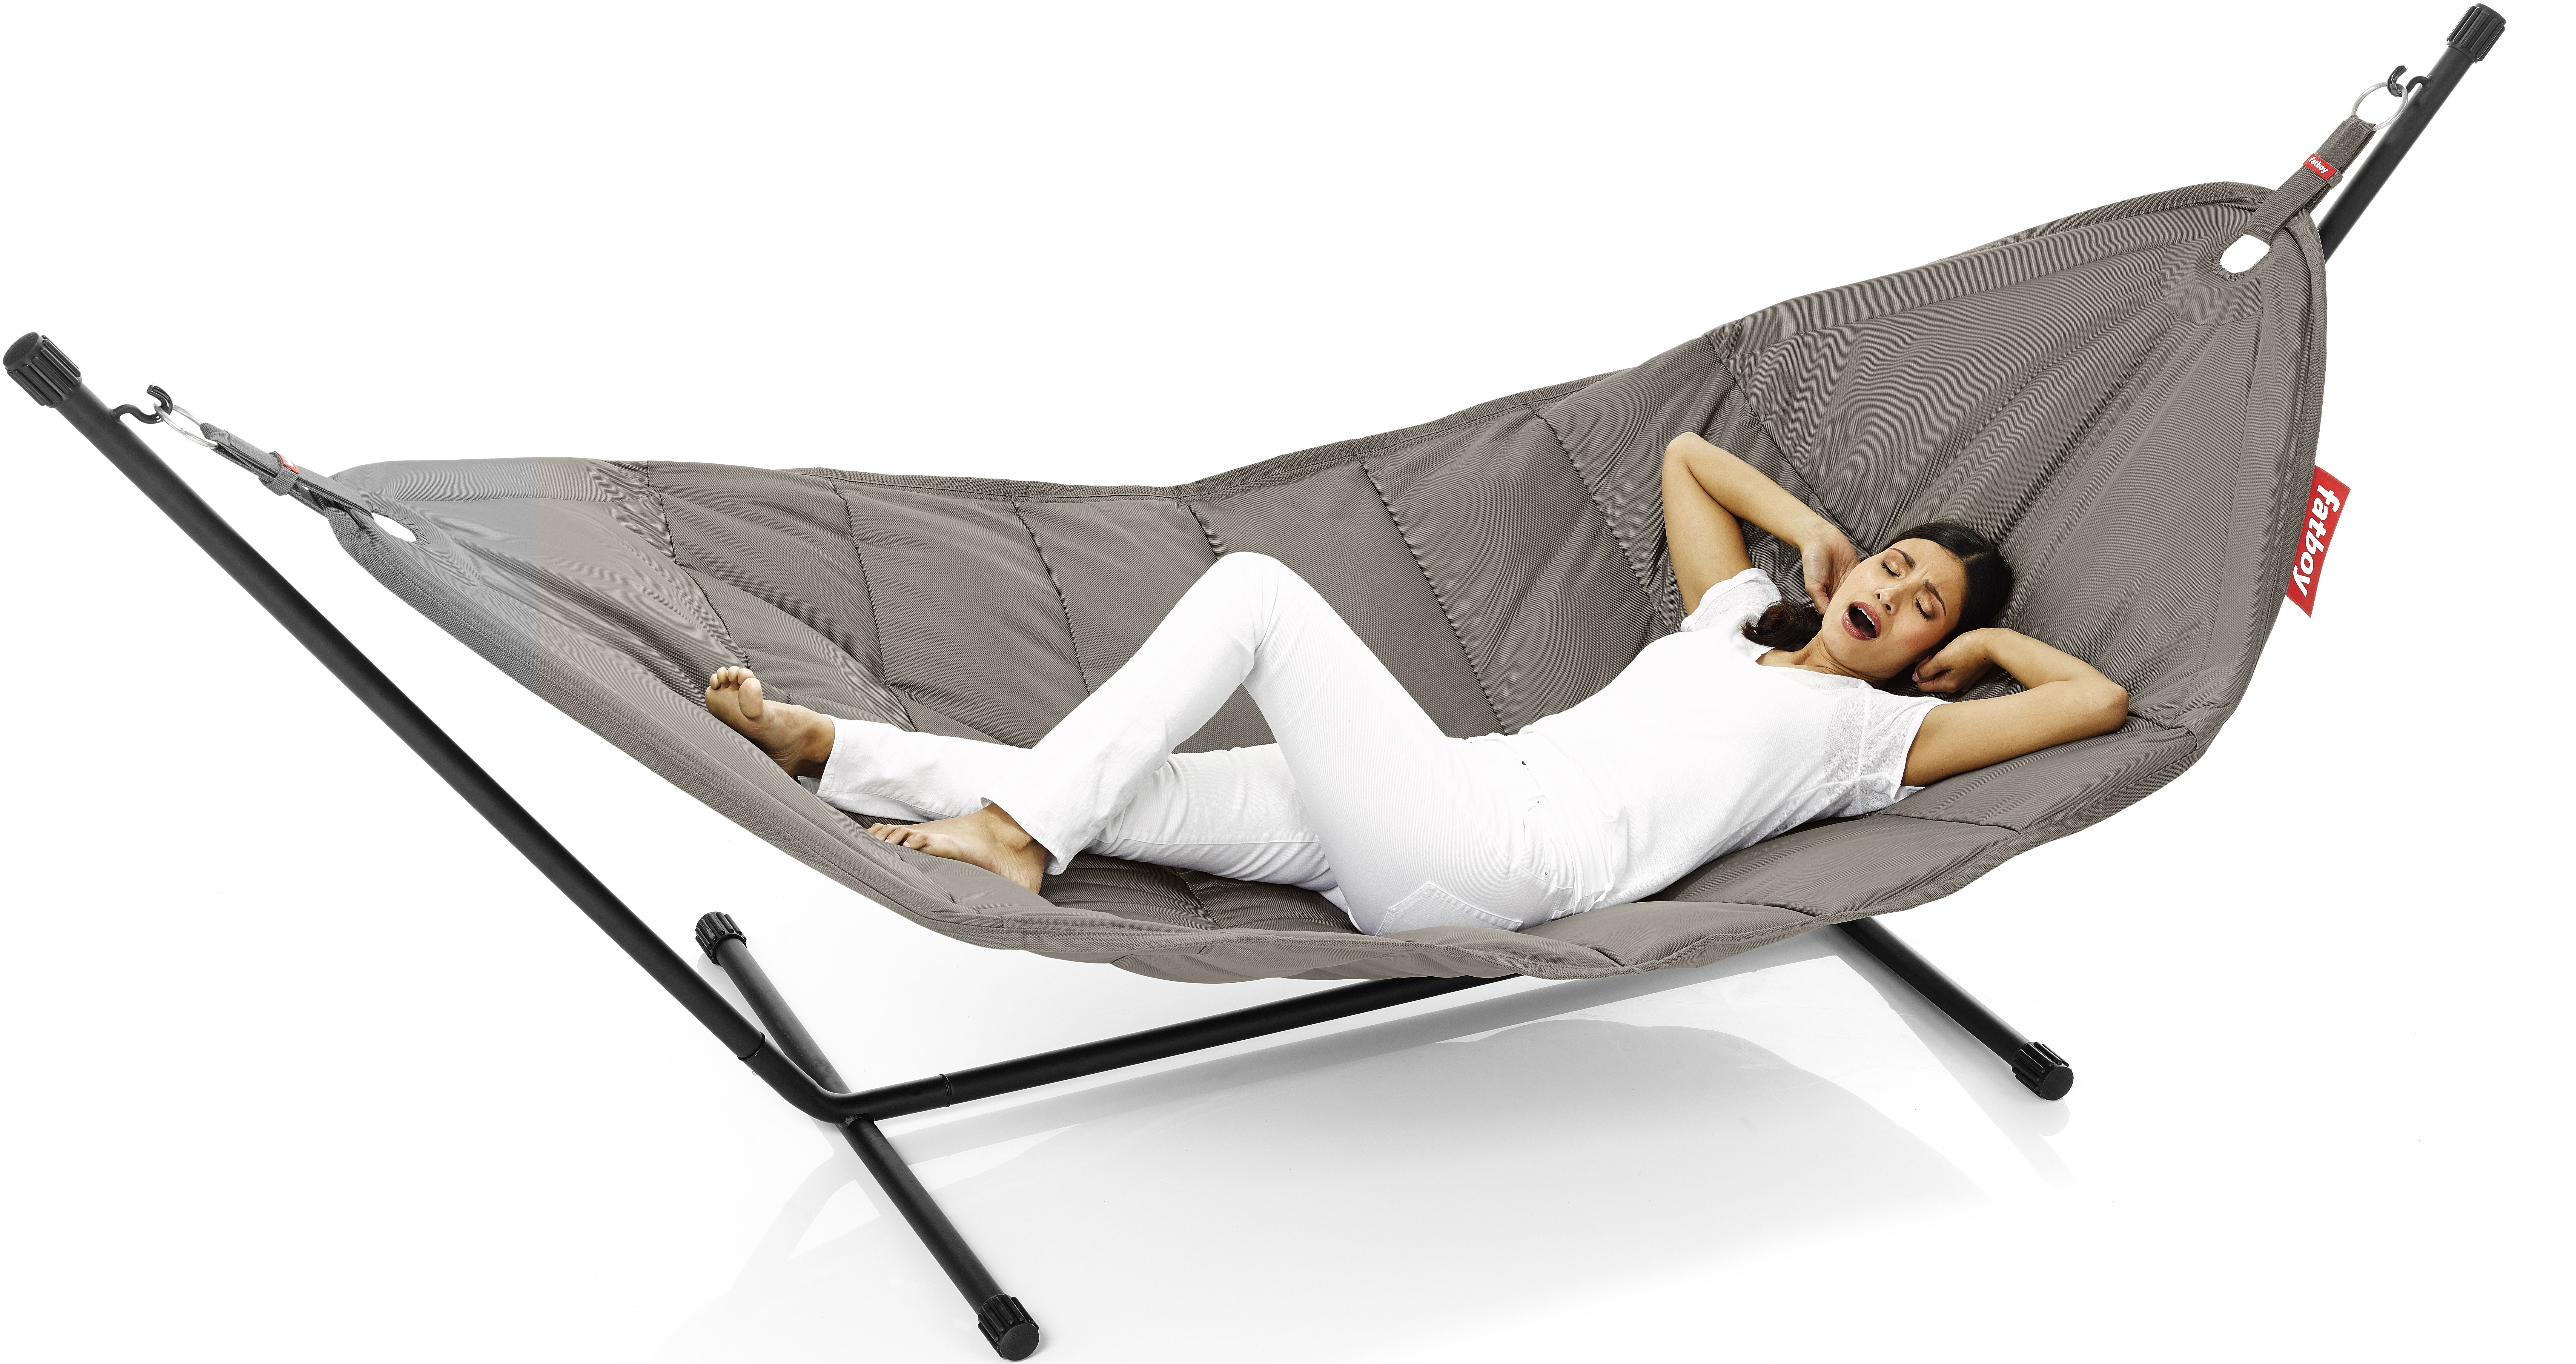 Outdoor - Chaises longues et hamacs - Hamac Headdemock / Tissu polyester - Fatboy - Taupe - Acier, Polyester